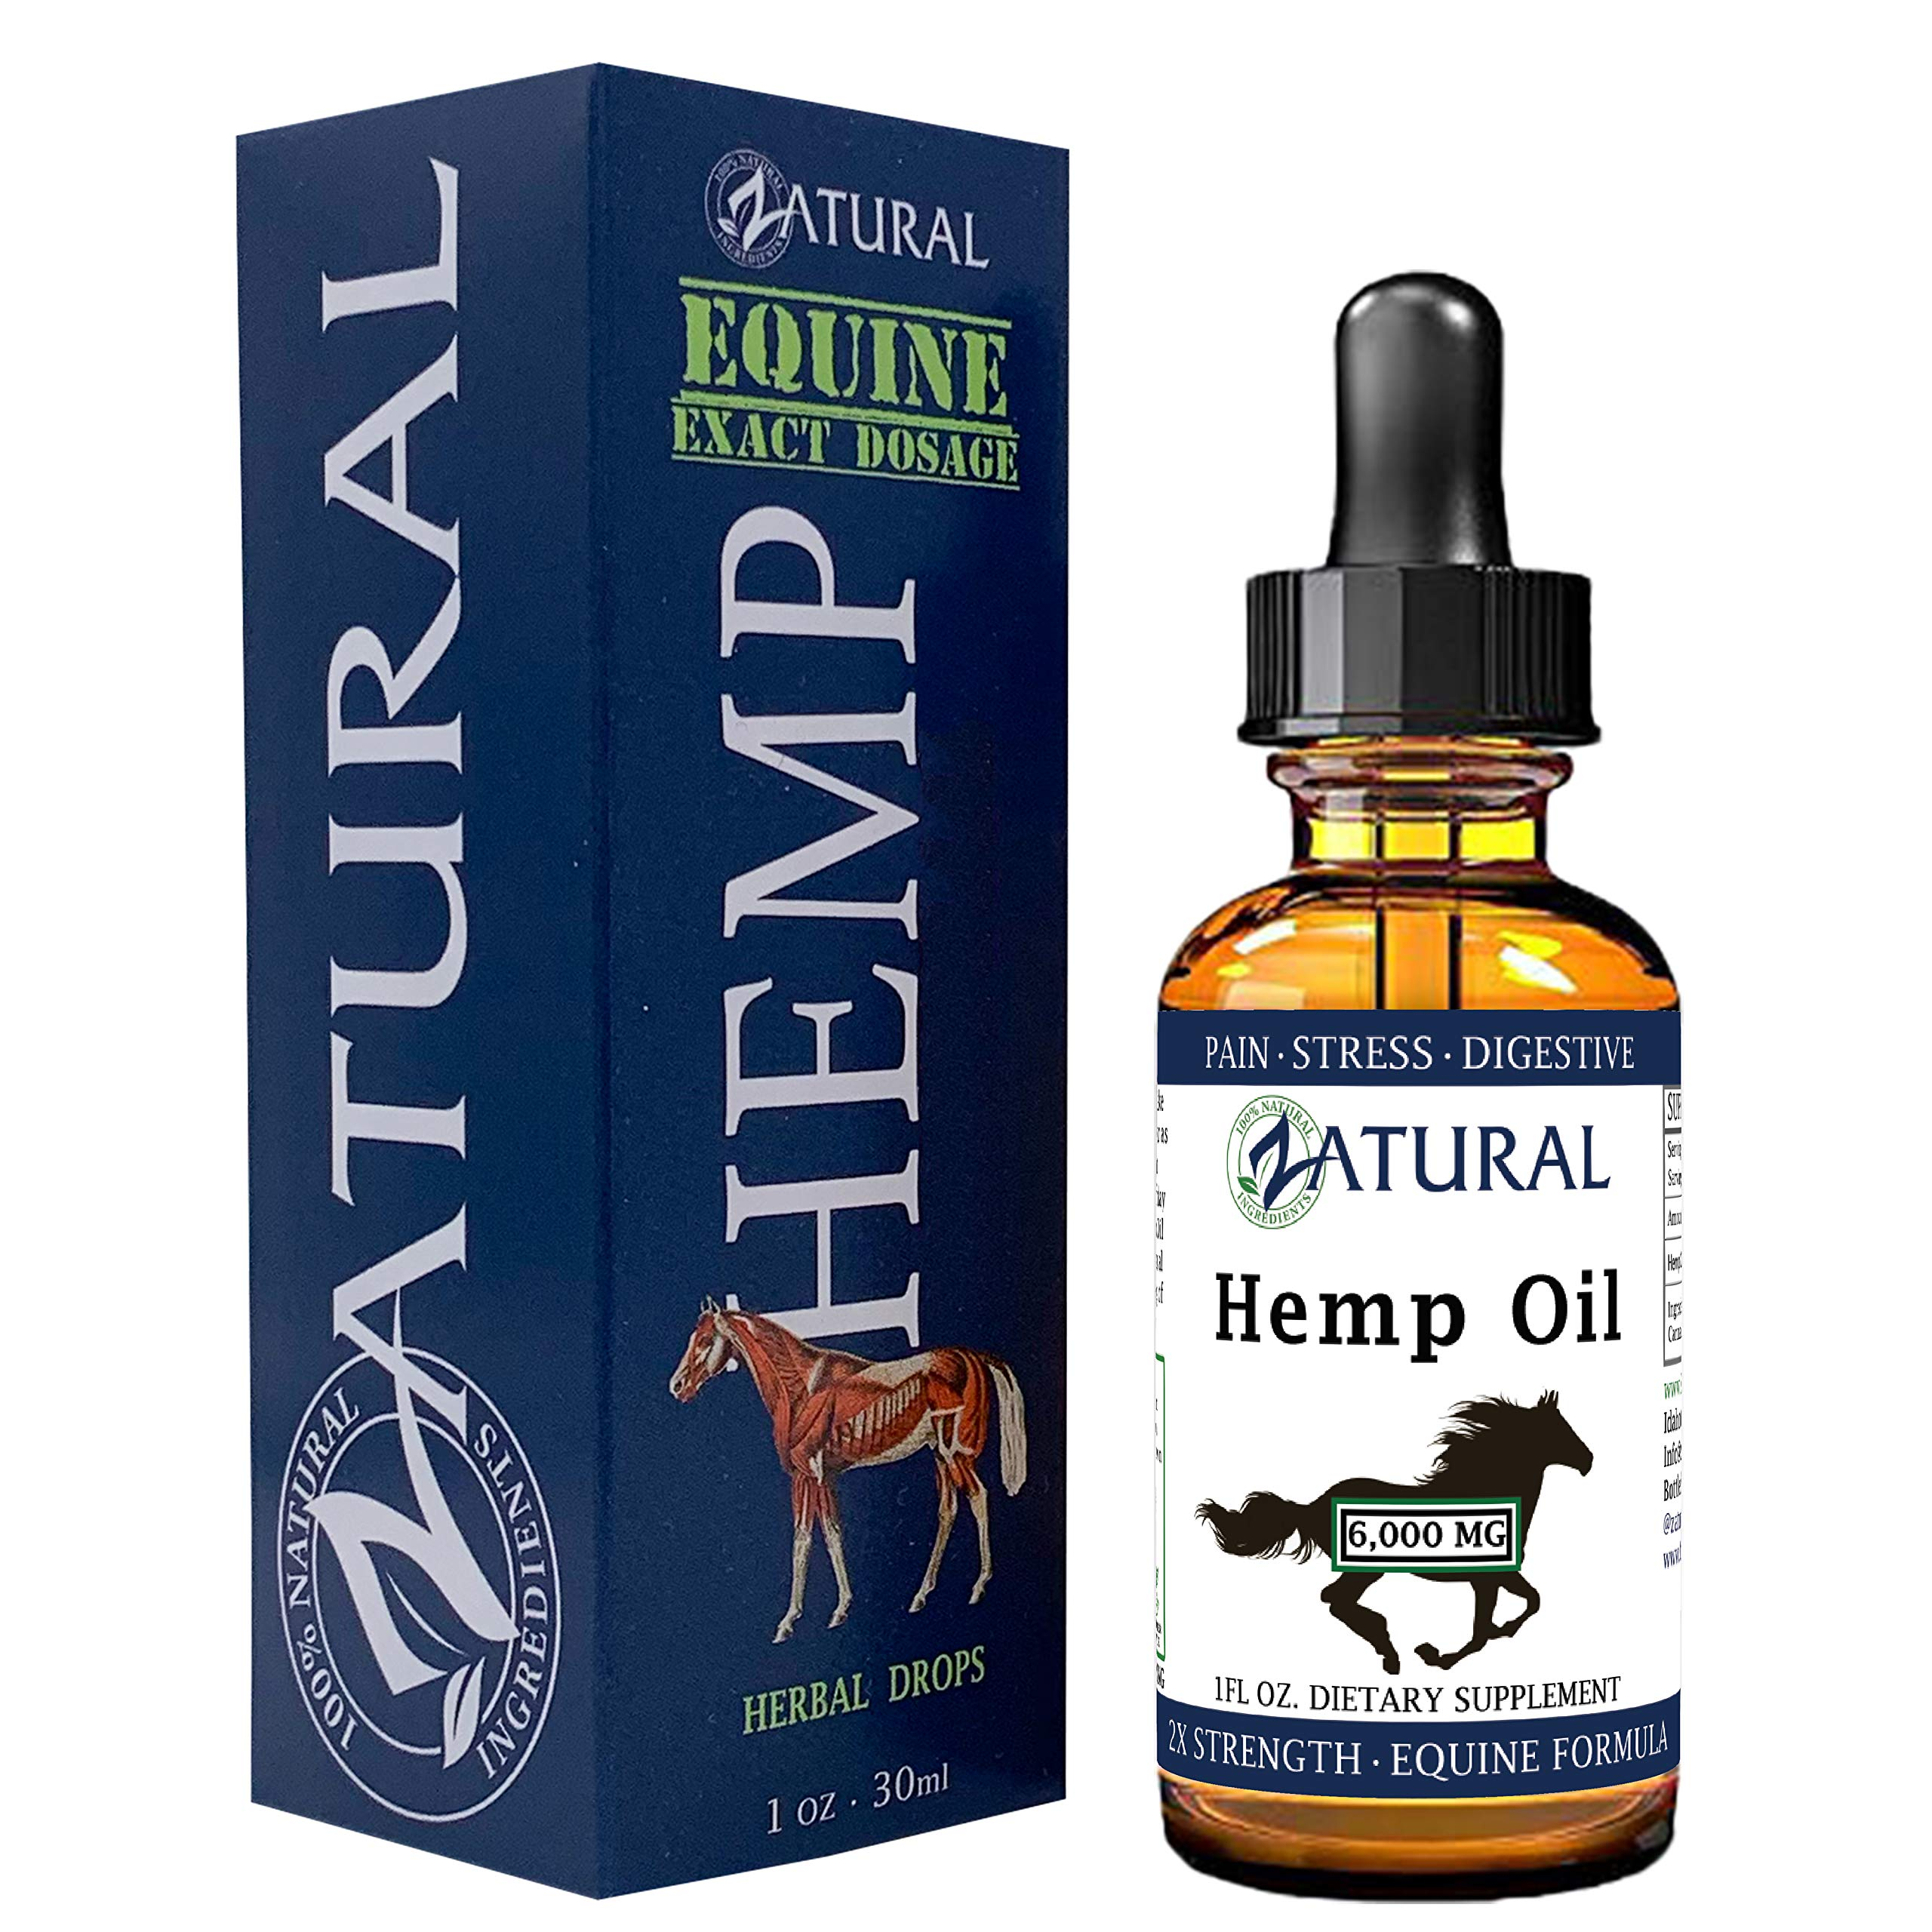 Zatural Equine Hemp Oil 6,000mg - Hemp Seed Oil for Horses - Advanced Equine Formula (6,000mg) by Zatural